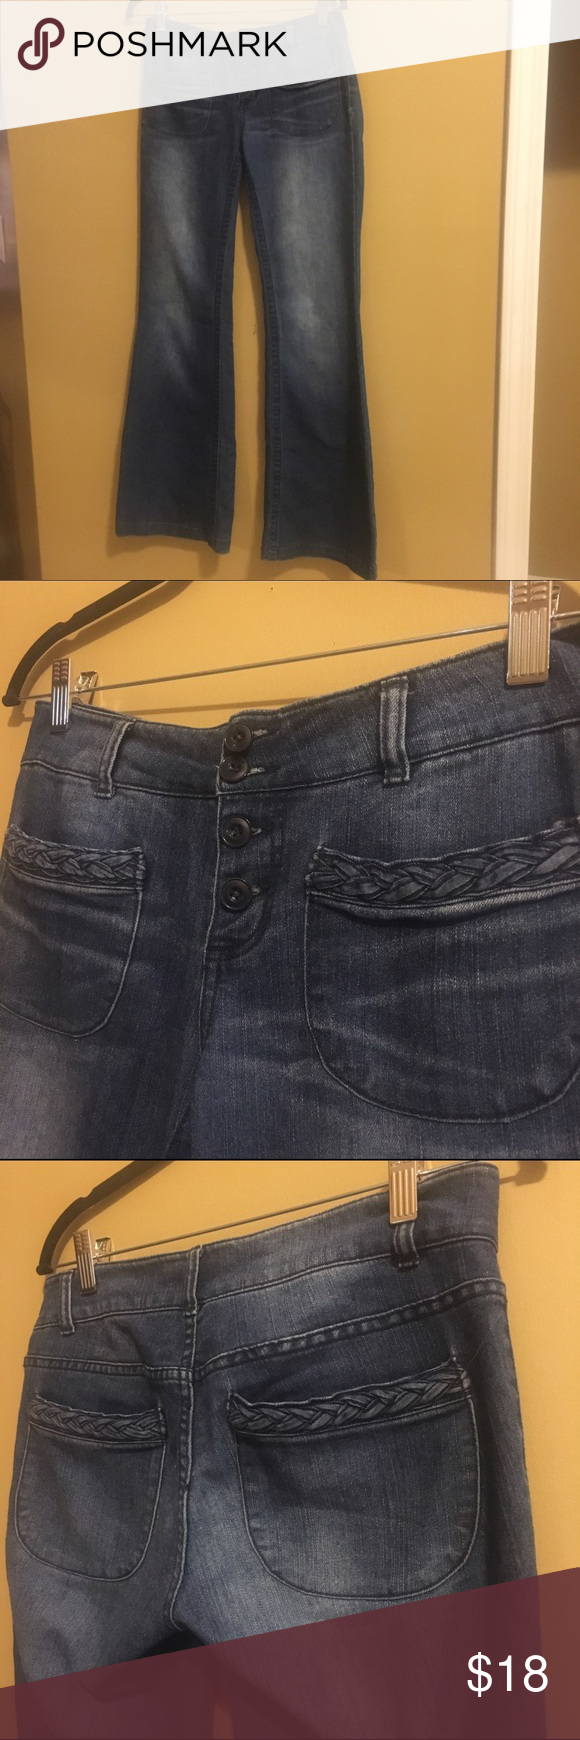 Forever 21 Wide-legged Jeans size 27 / 32 inch inseam / excellent quality! This was the old days of Forever 21 construction. They're precious jeans and sturdy, and well-made, in my opinion. Slight wear on back heel if cuff, but overall great condition! Forever 21 Jeans Flare & Wide Leg